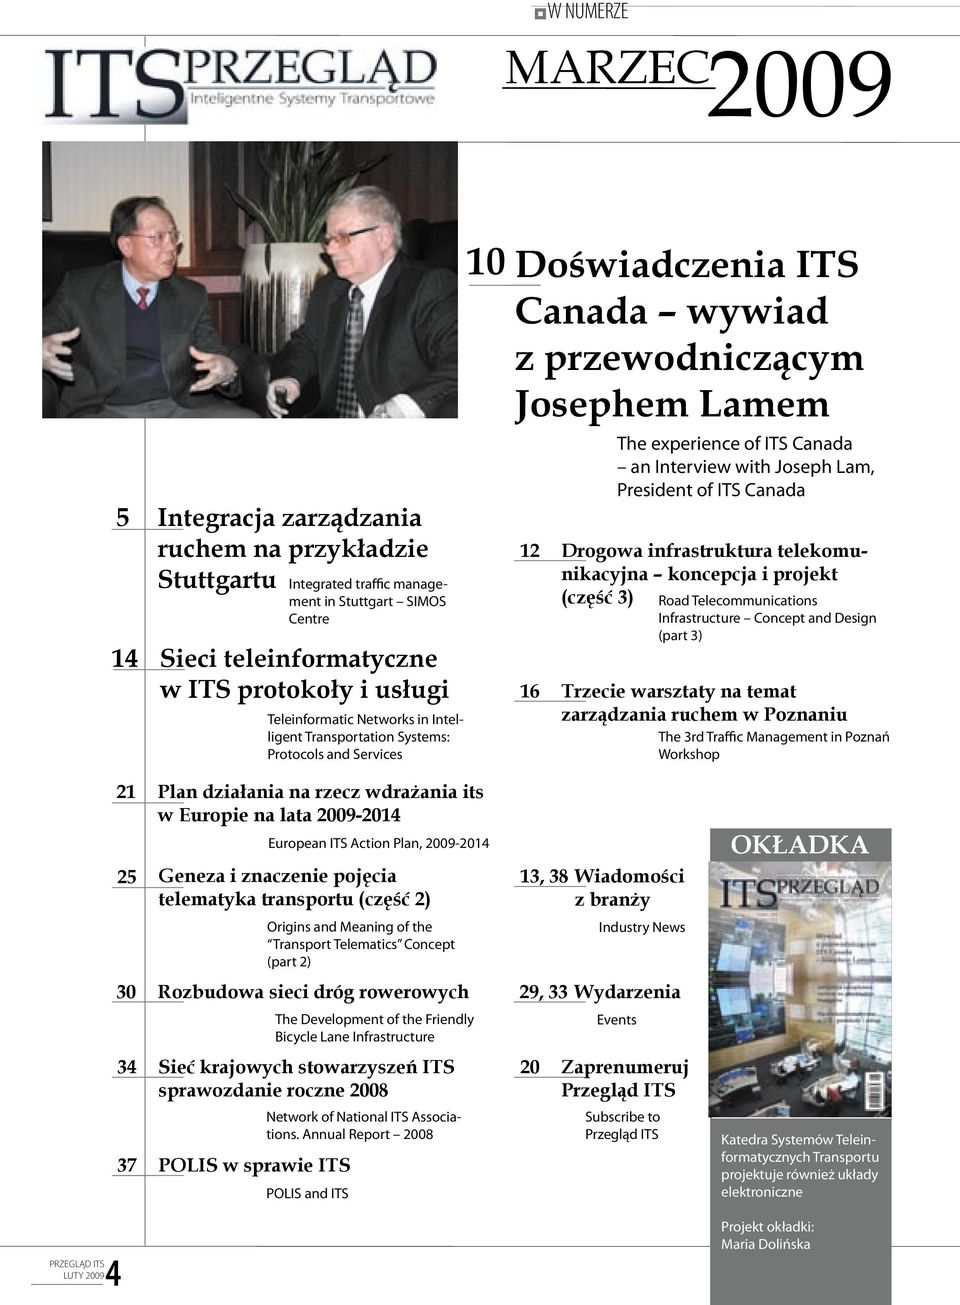 Interview with Joseph Lam, President of ITS Canada Drogowa infrastruktura telekomunikacyjna koncepcja i projekt (część 3) Road Telecommunications Infrastructure Concept and Design (part 3) Trzecie